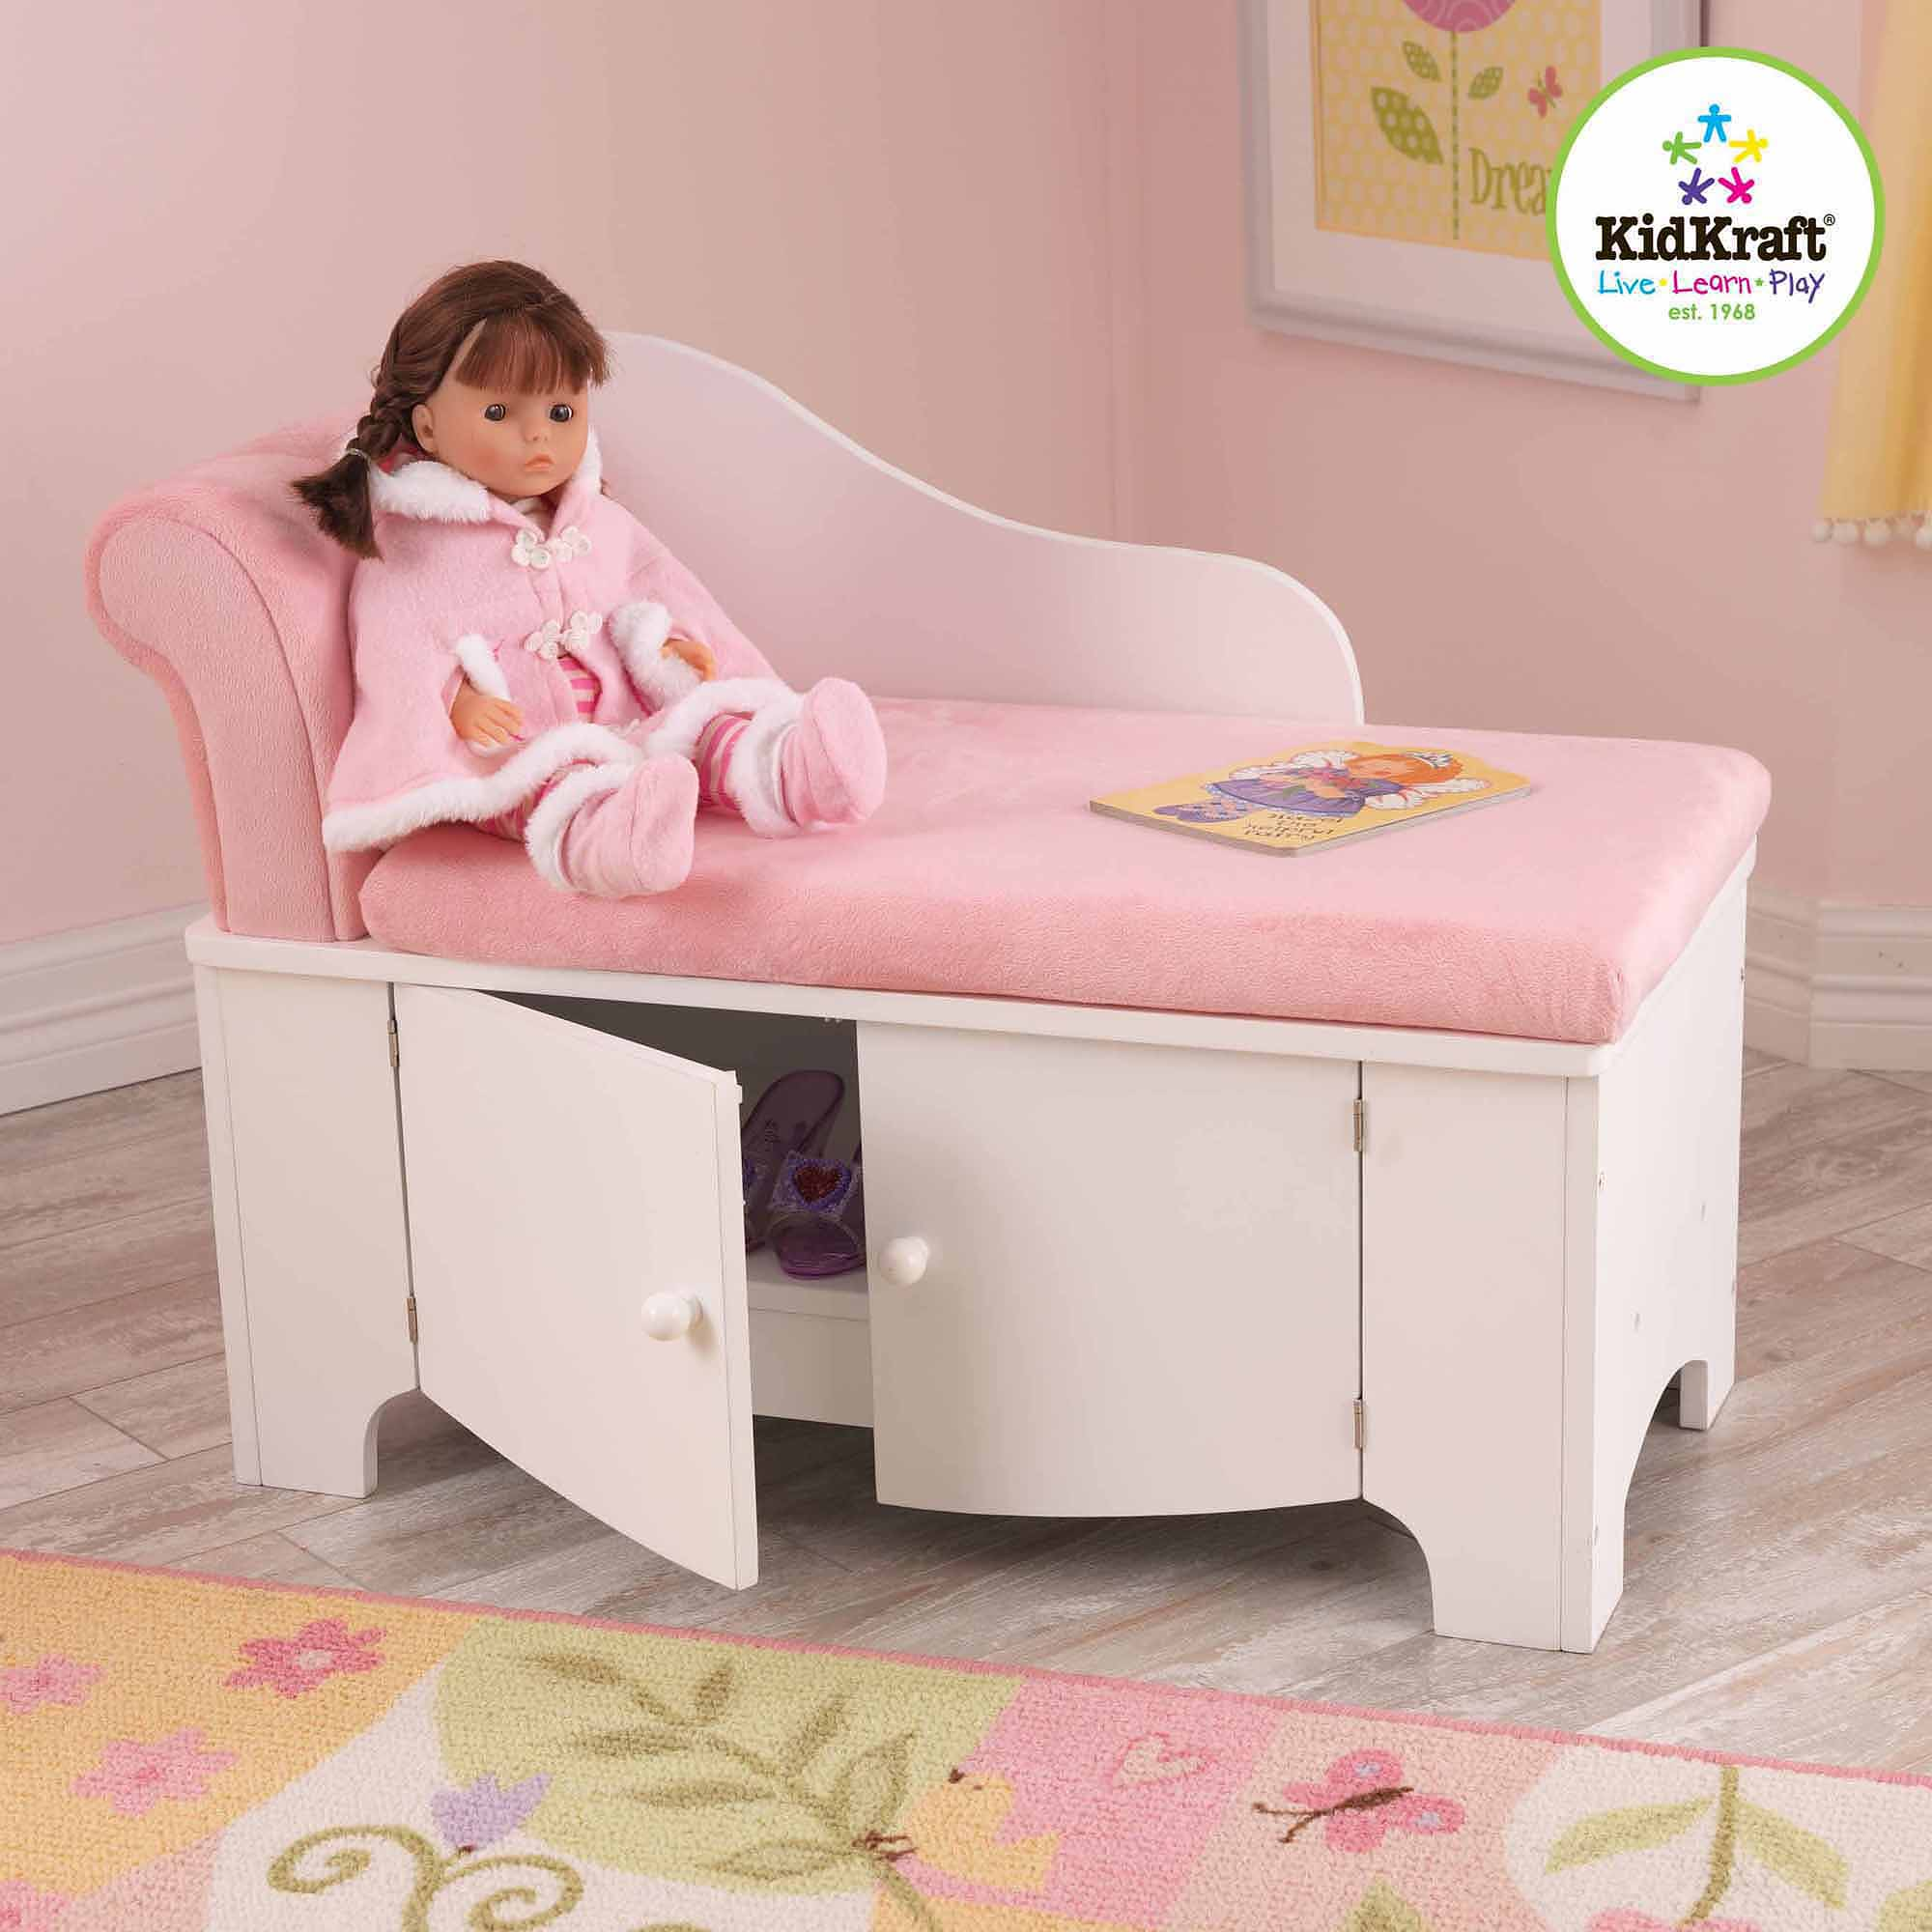 KidKraft Princess Chaise Lounge with Storage